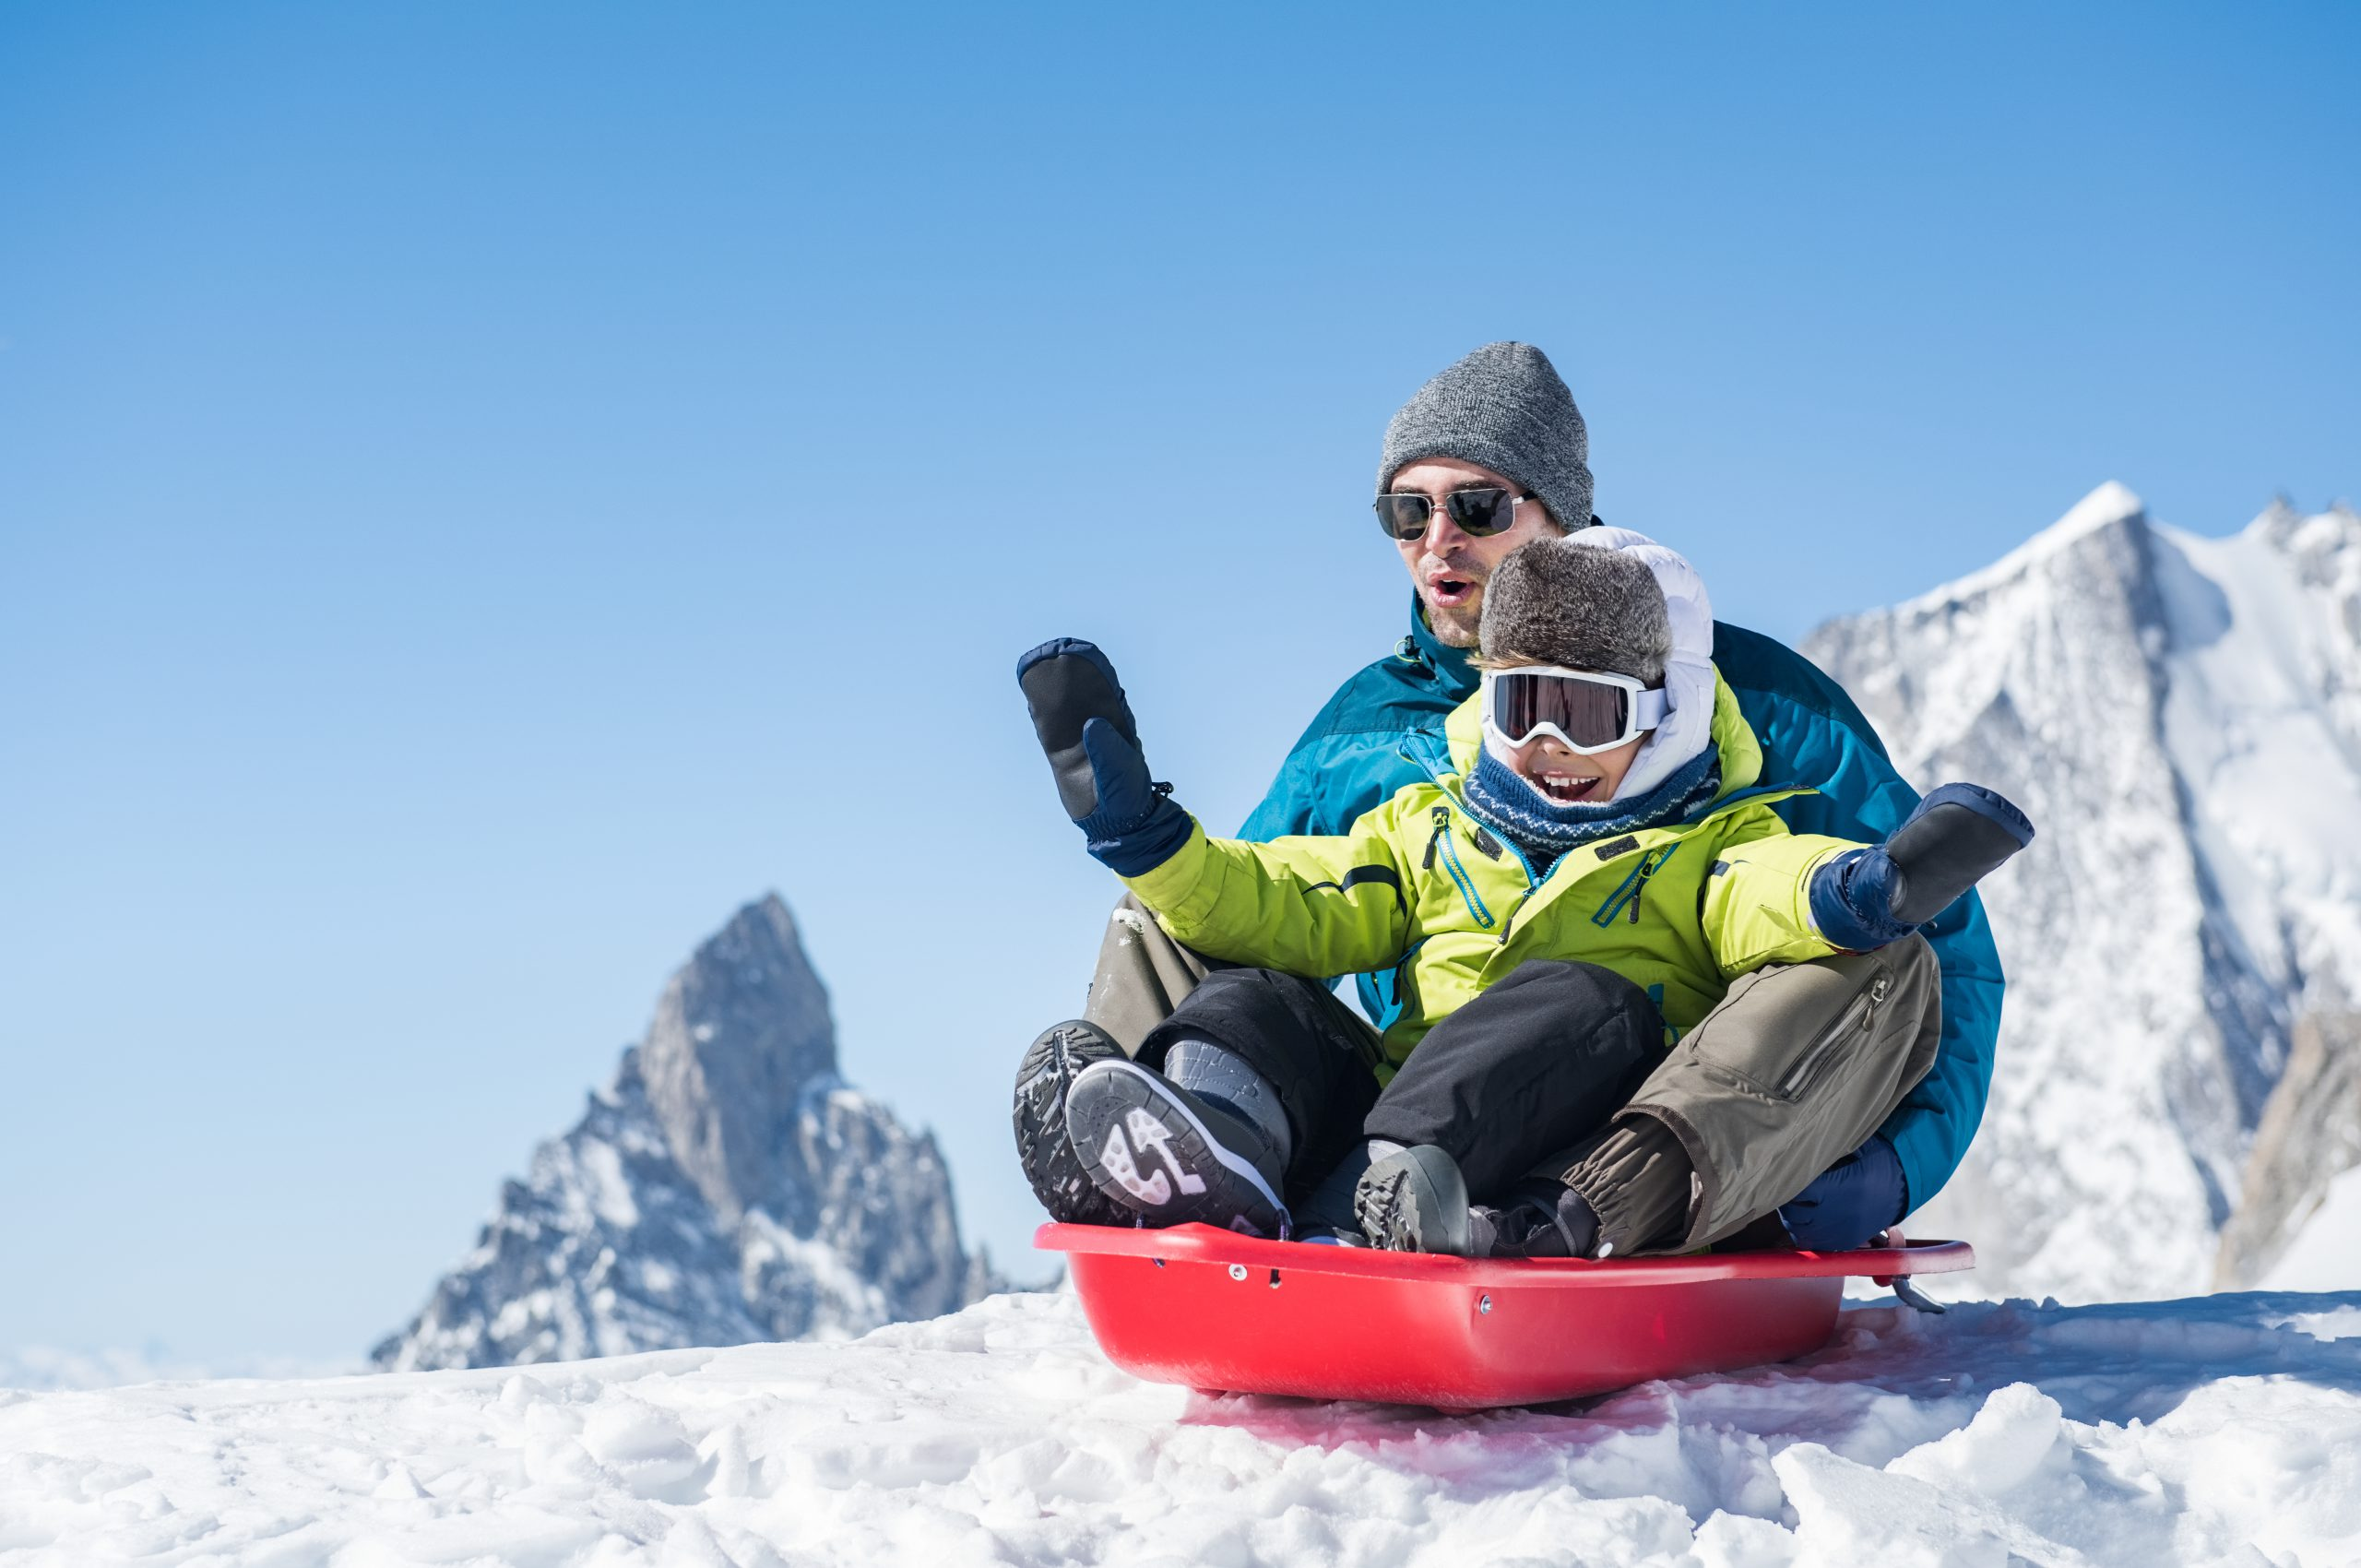 Father and son sledding or tobogganing